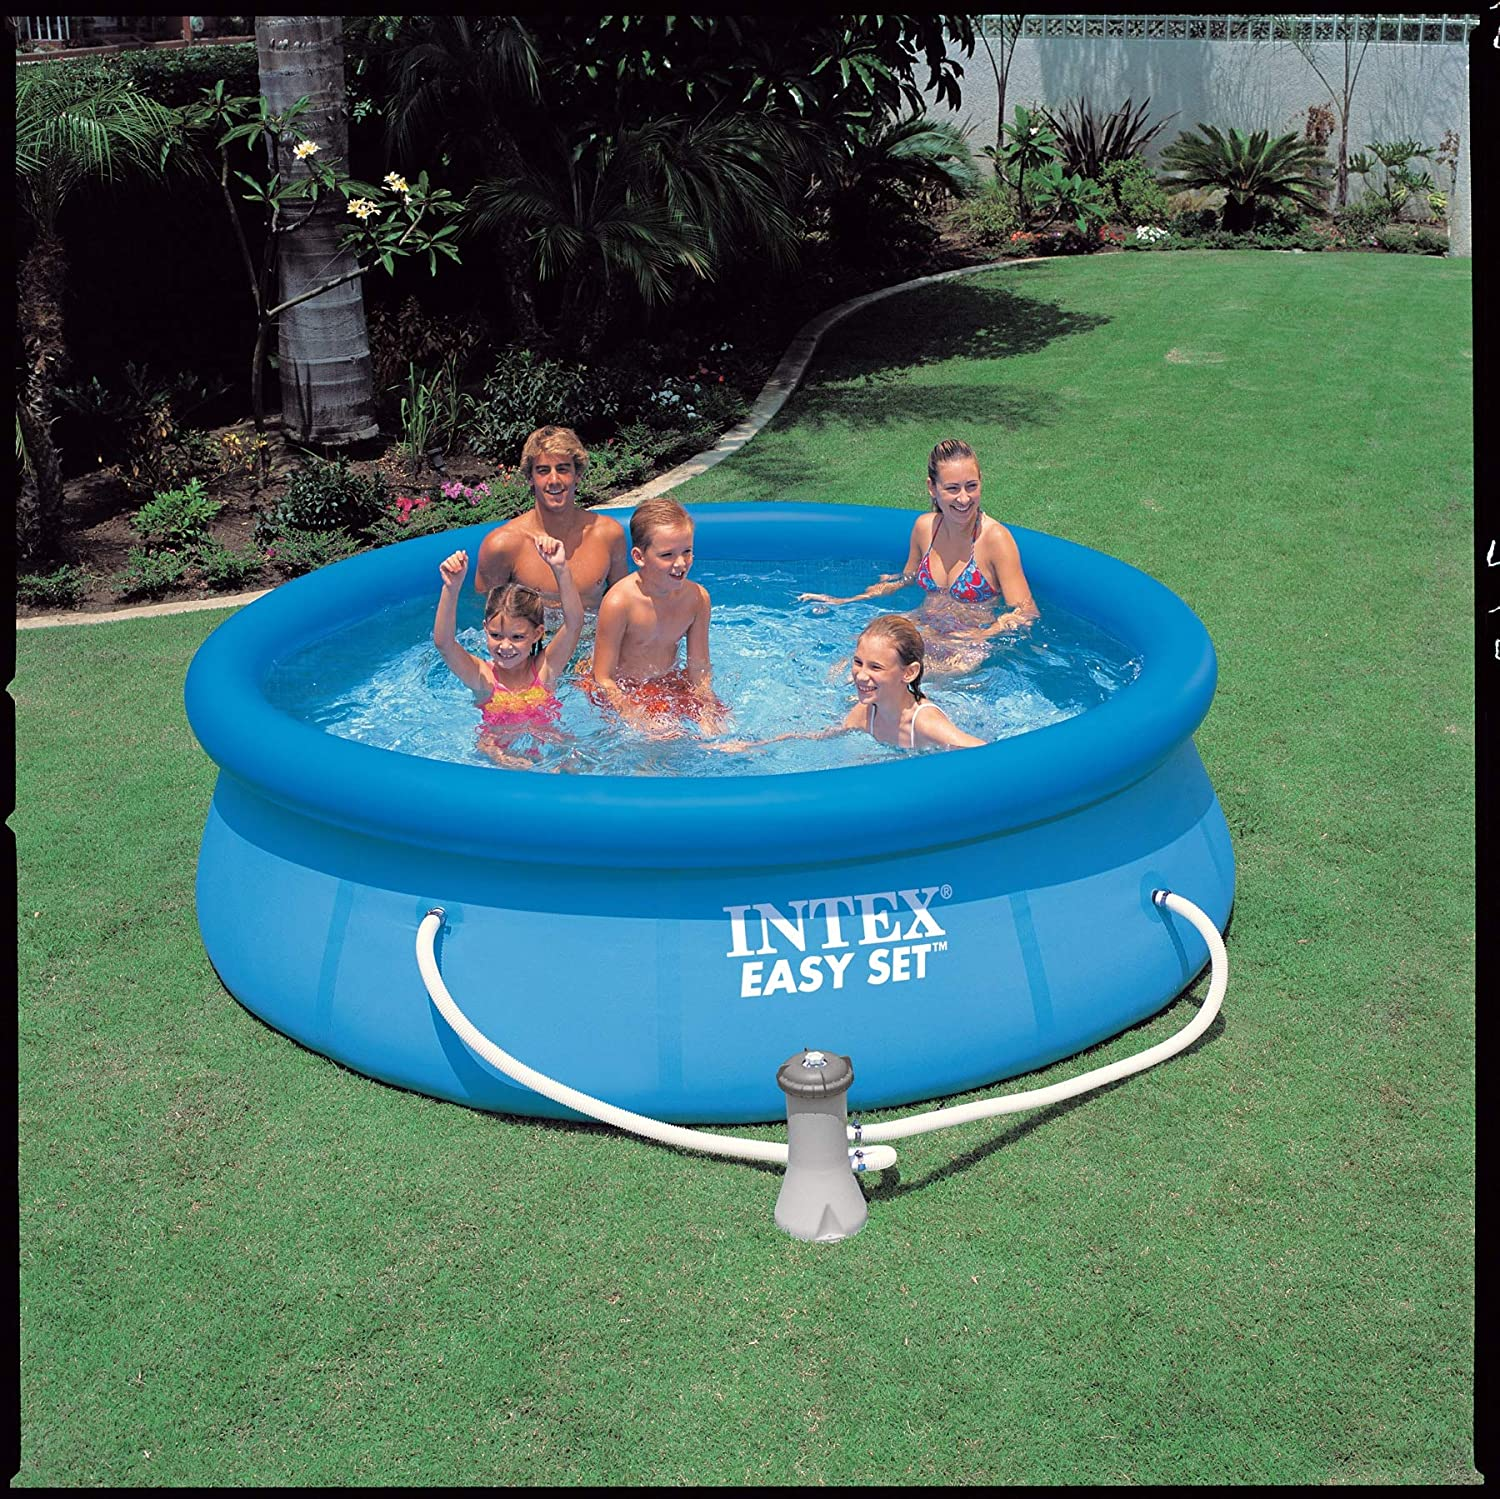 Intex Easy Set Pool - Aufstellpool - Ø 305 x 76 cm - Mit Filteranlage